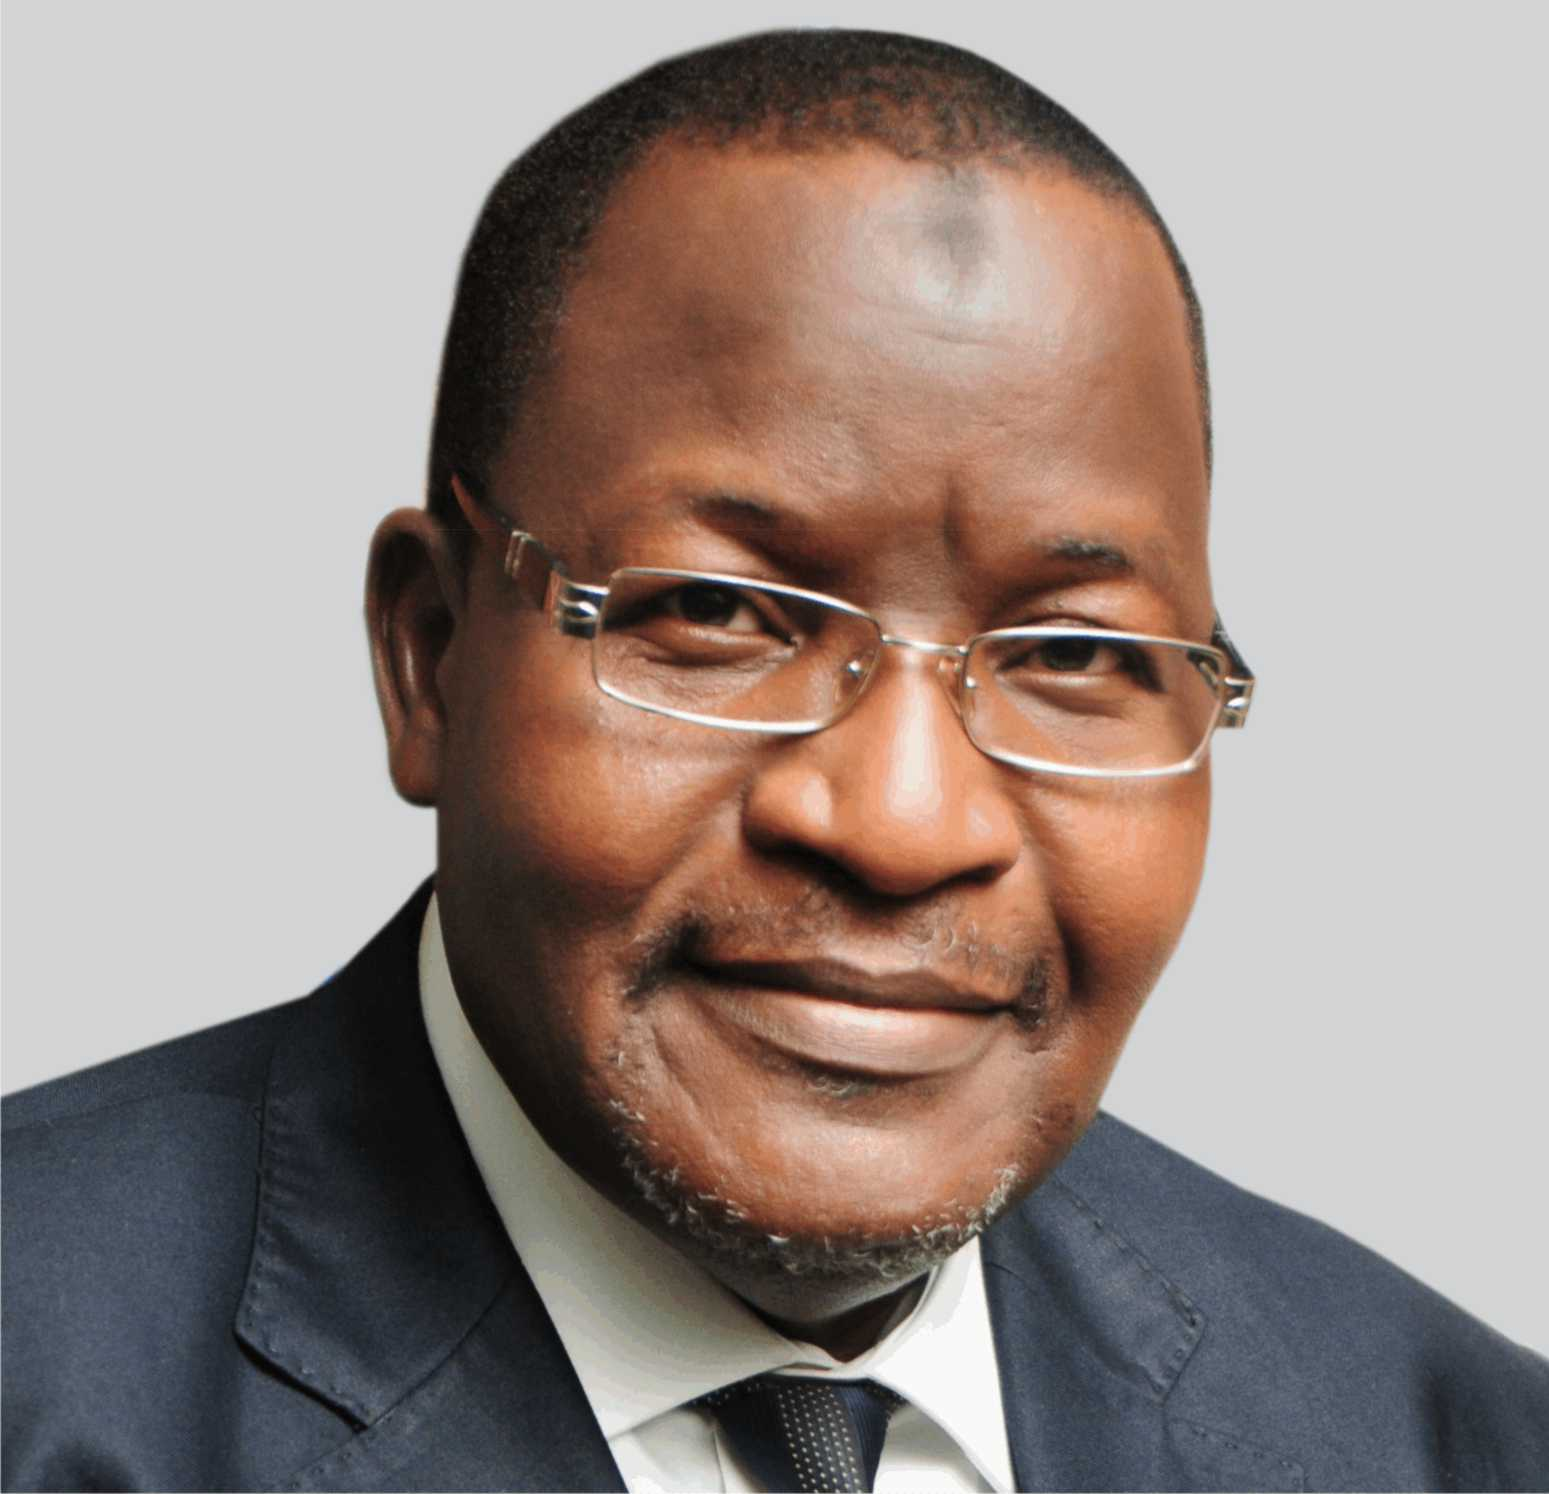 Could The NCC Be Planning To Regulate Services Like WhatsApp, Facebook In Nigeria?